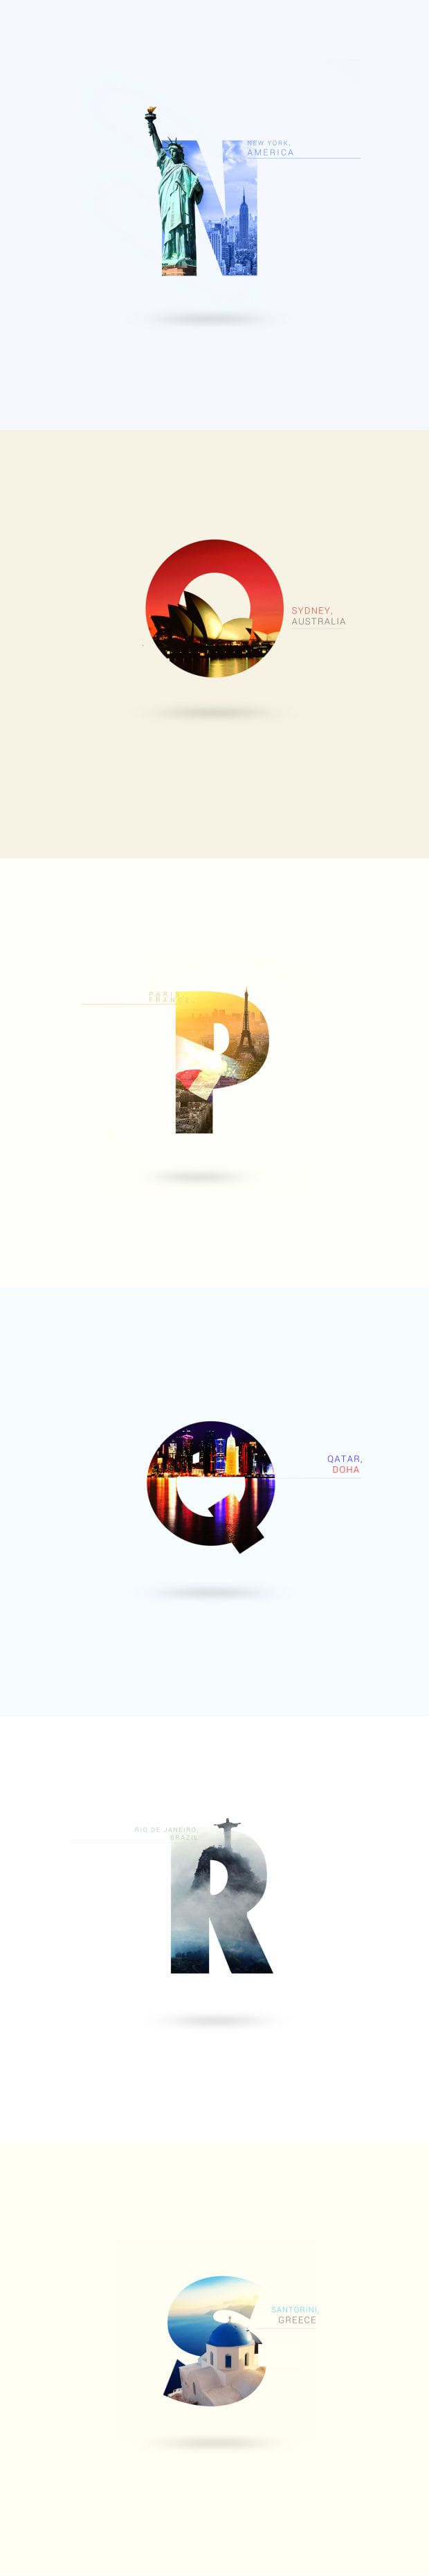 Travel Around The World With This Beautifully Designed Visual Alphabet - UltraLinx